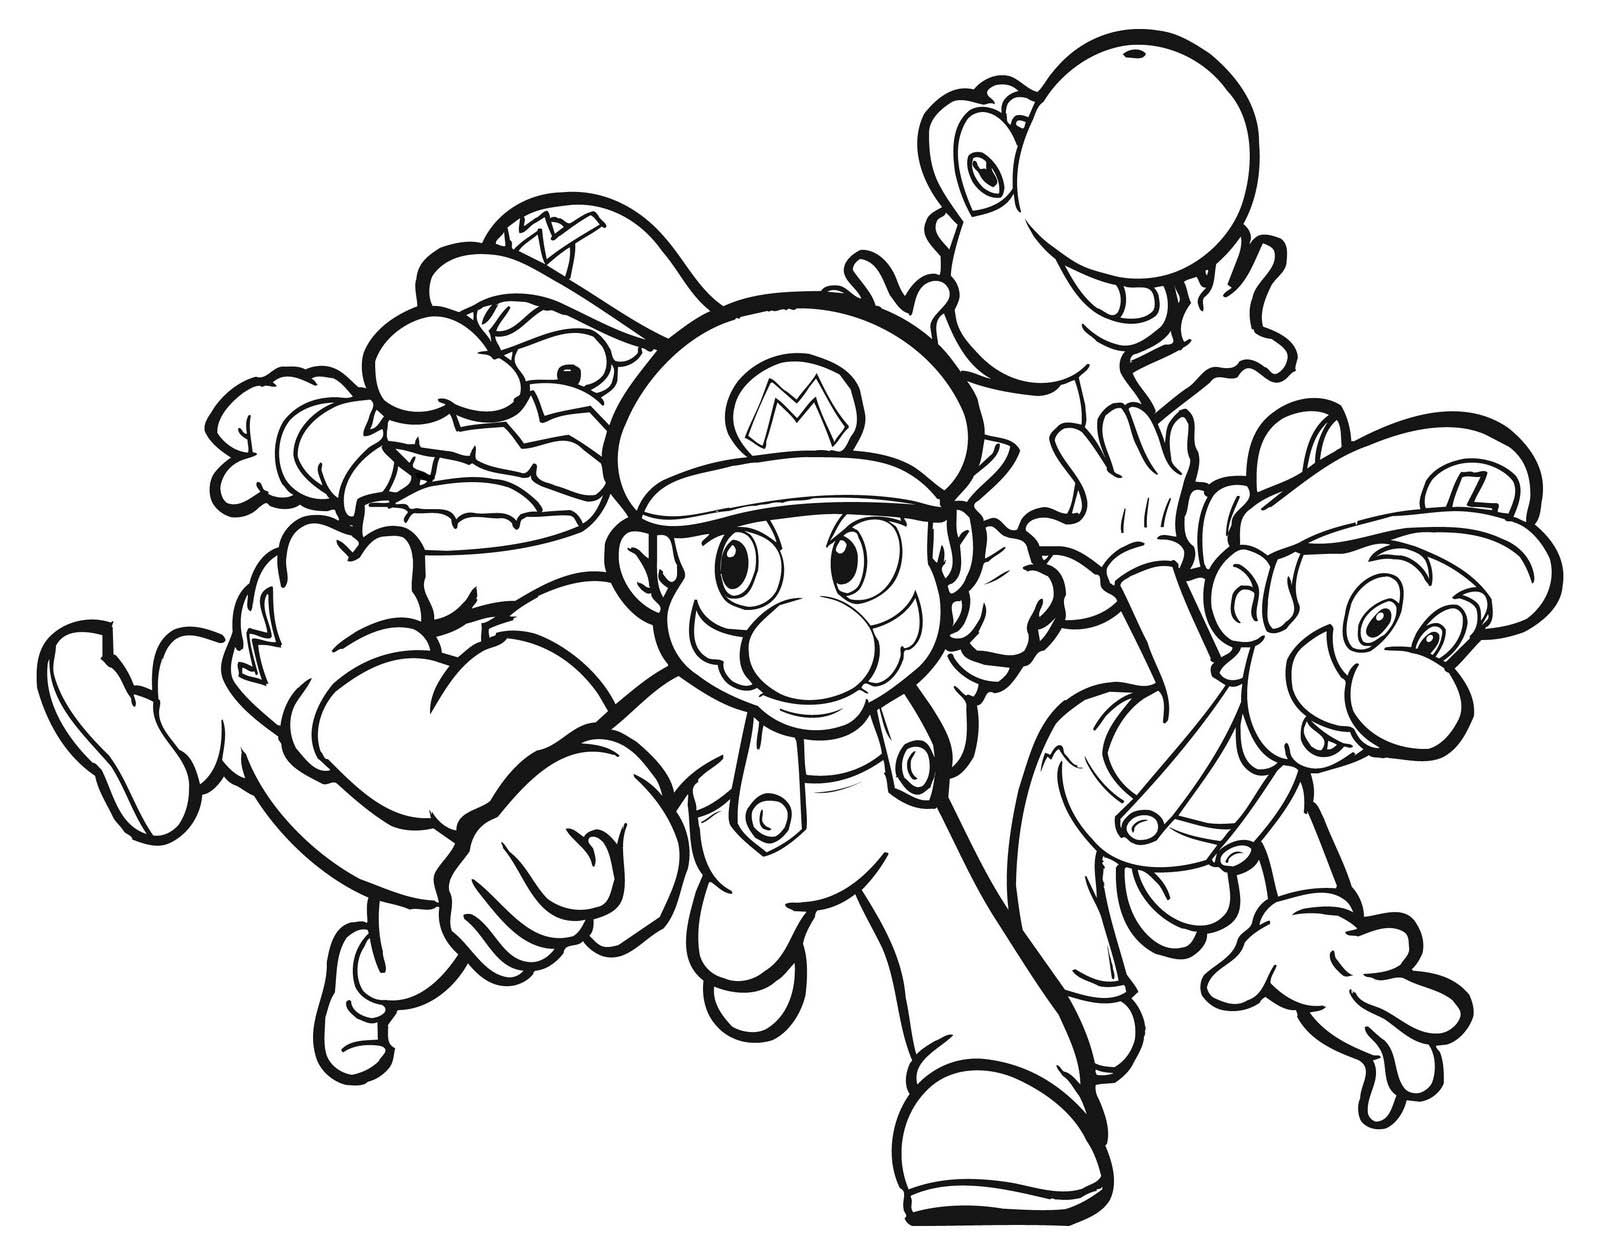 Super Smash Bros Brawl Colouring Pages - Coloring Page